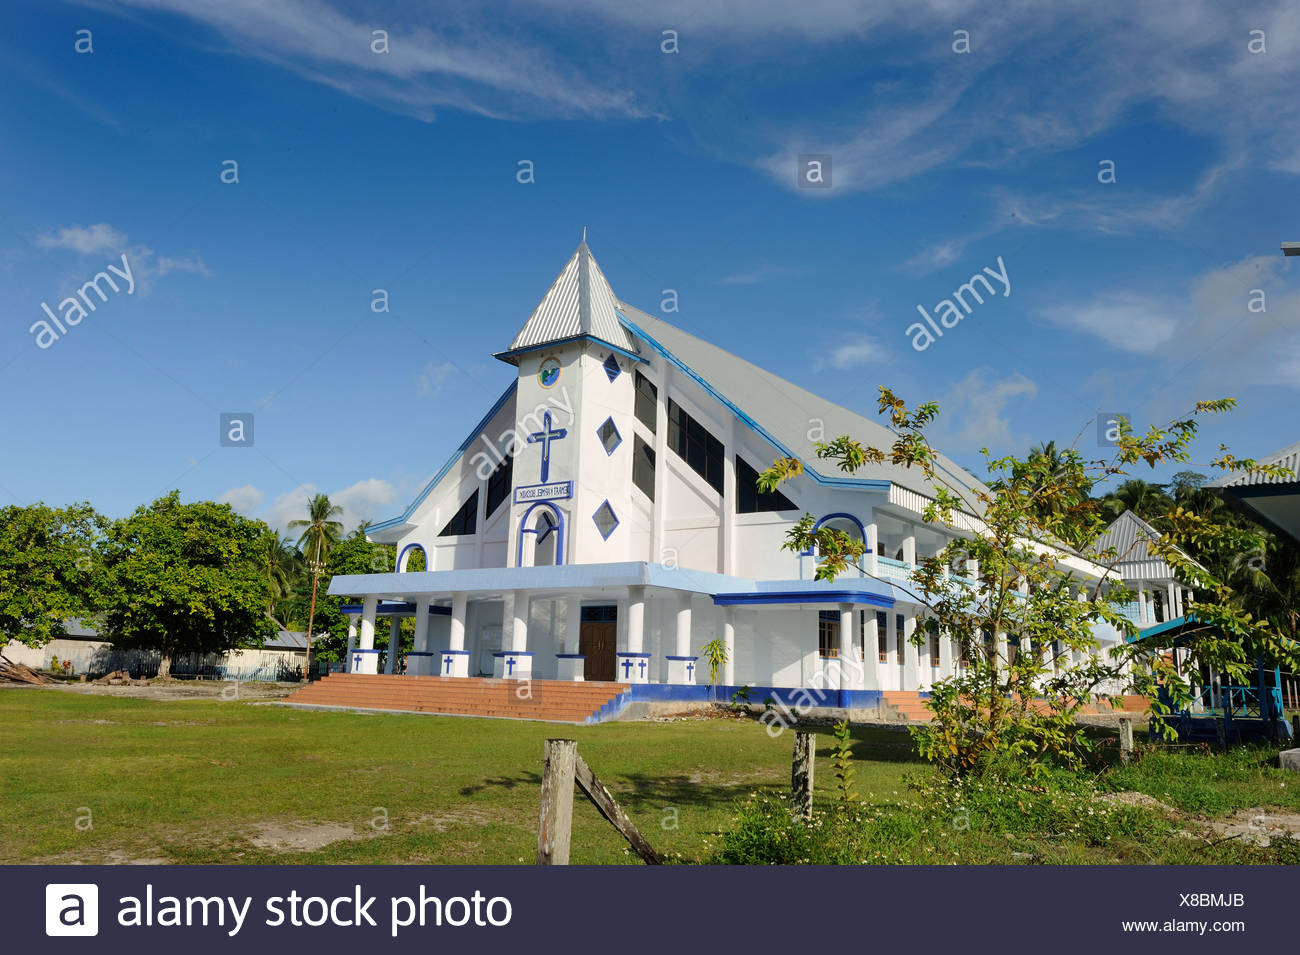 Gereja Kristen Tanah Papua, Gereja di Indonesia church, Jalan Bosnik Raya, Biak Island off the island of Papua Neuguinea - Stock Image